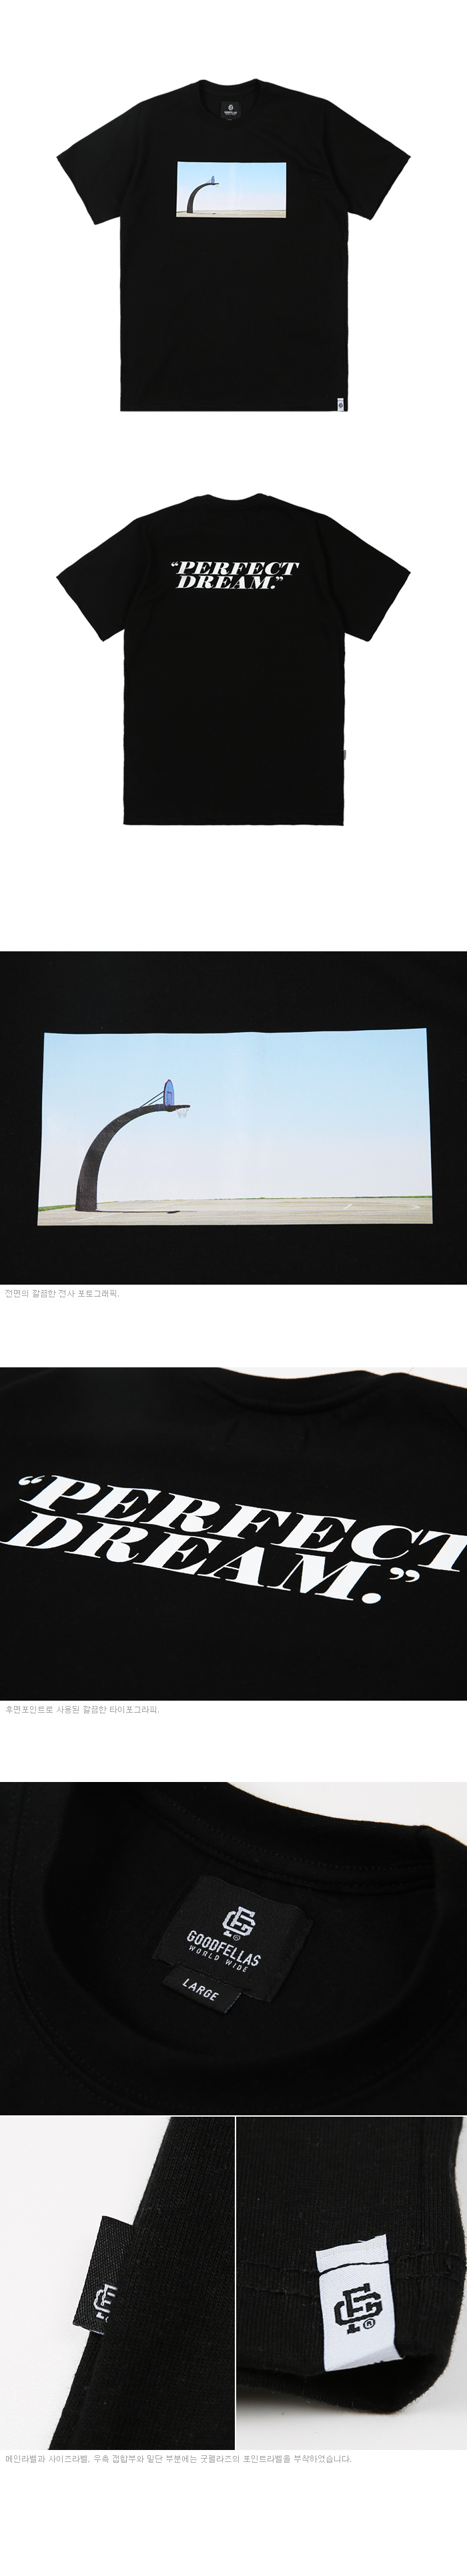 20160421_perfectdream_tee_bk_detail.jpg